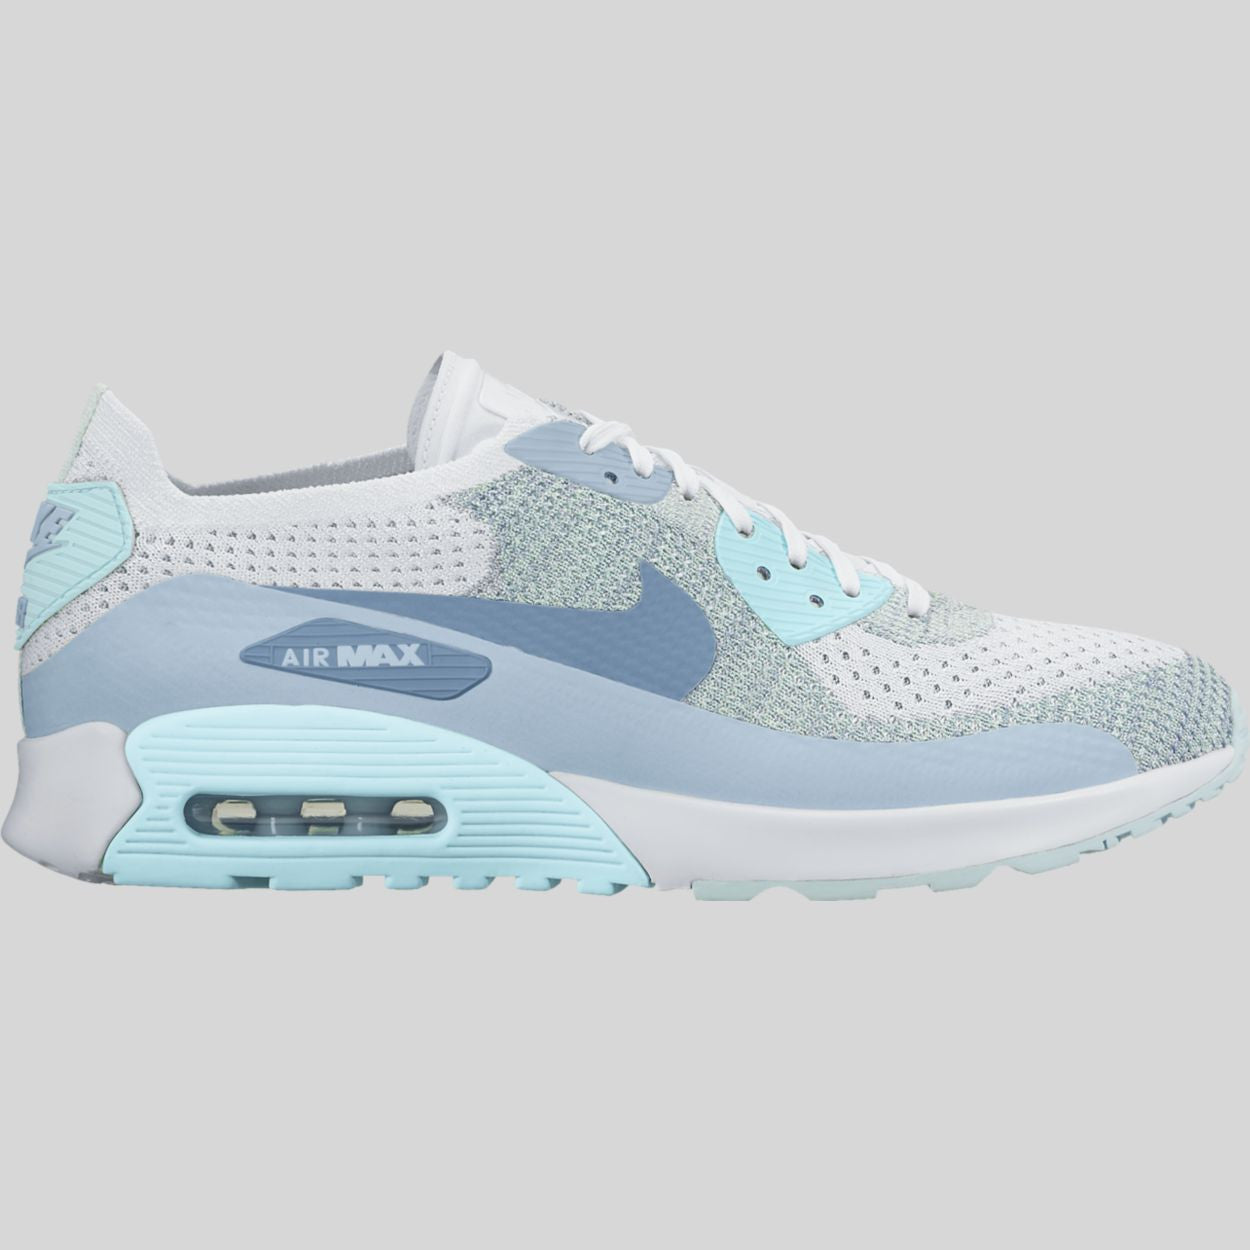 Nike Wmns Air Max 90 Ultra 2.0 Flyknit White Light Armory Blue